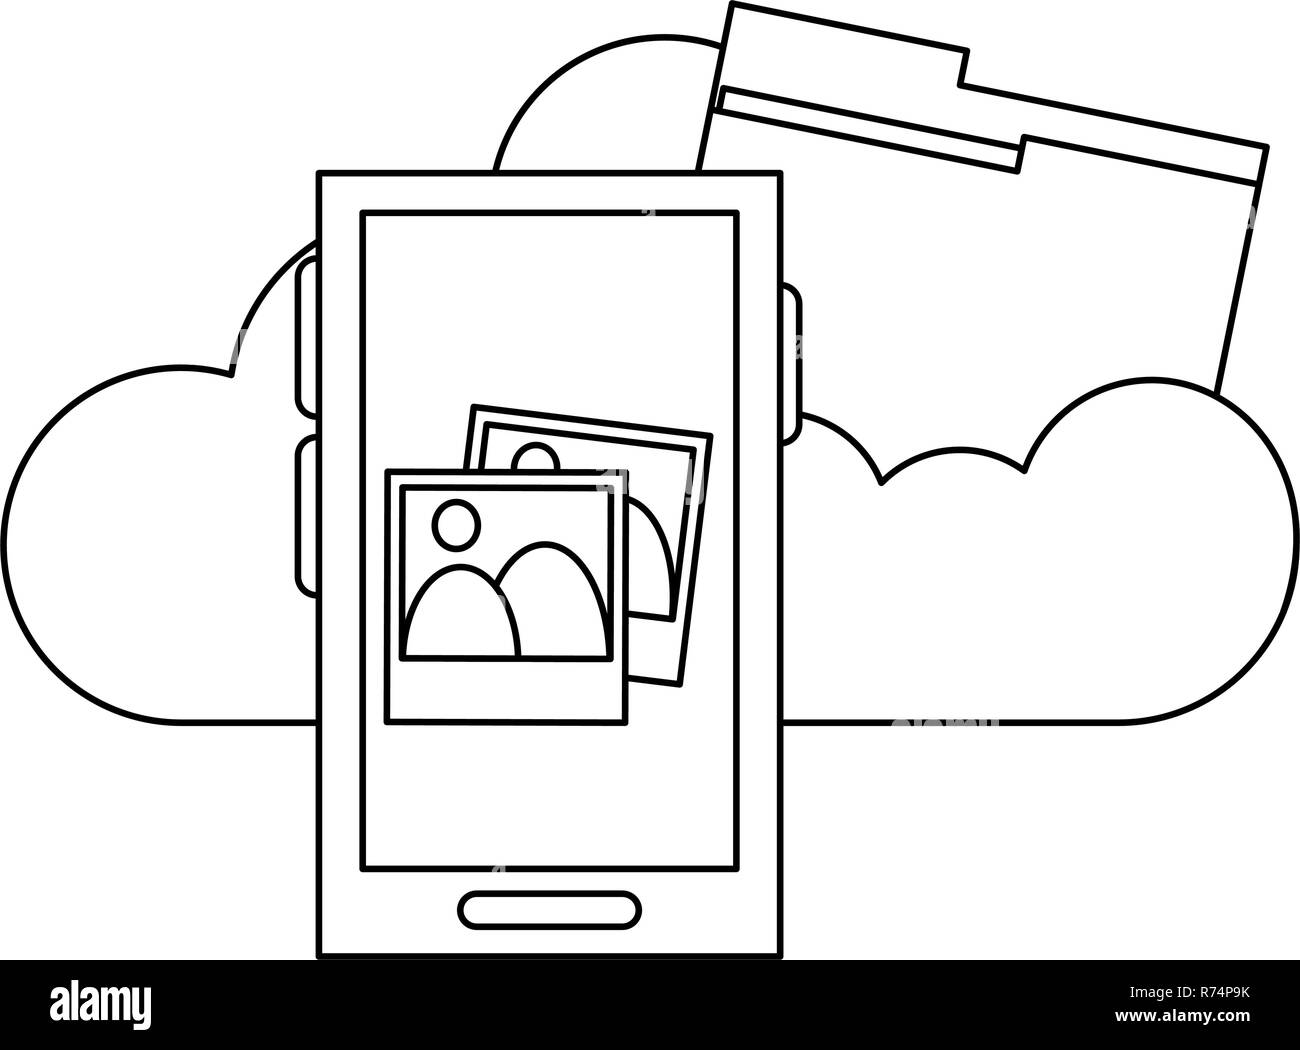 Smartphone with photos on cloud computing black and white - Stock Image